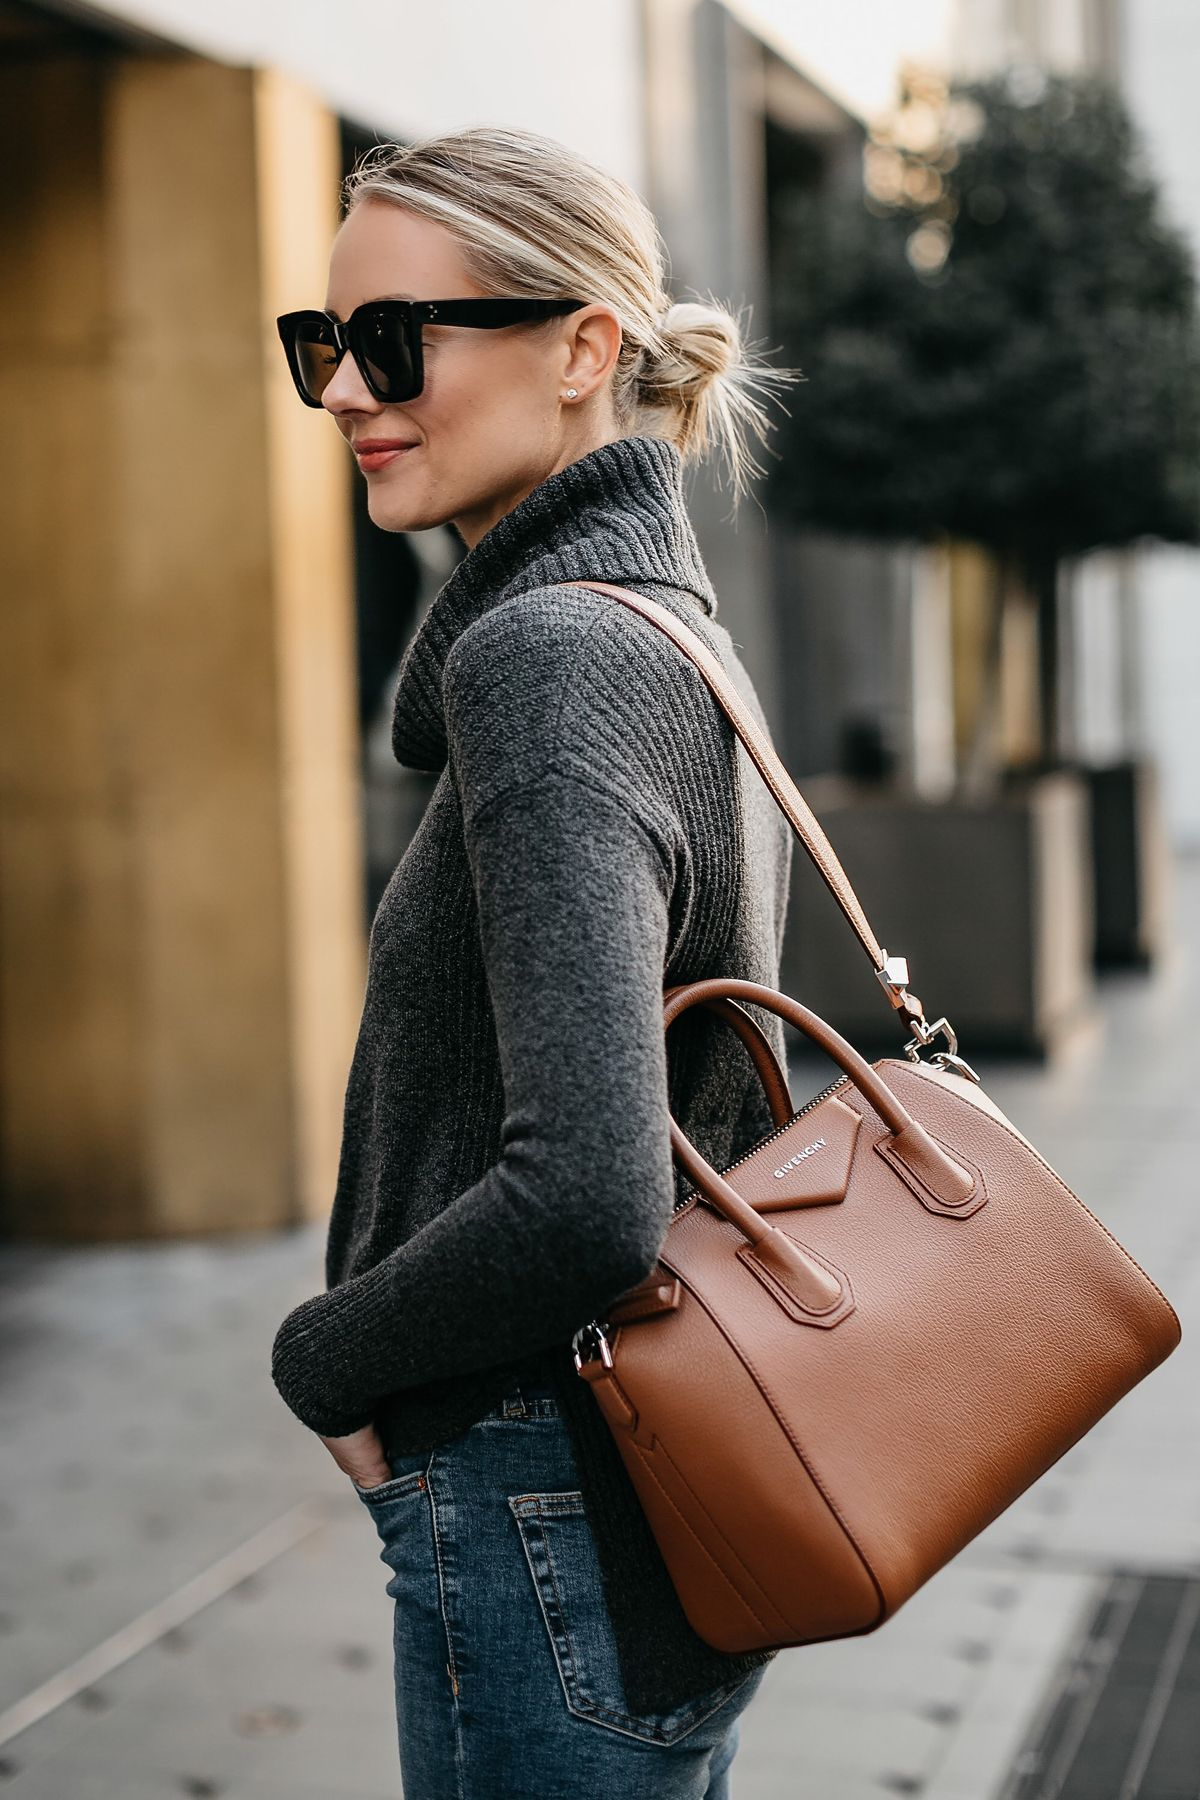 a8890ec7e970 The 10 Most Iconic Handbags in History - Savoir Flair